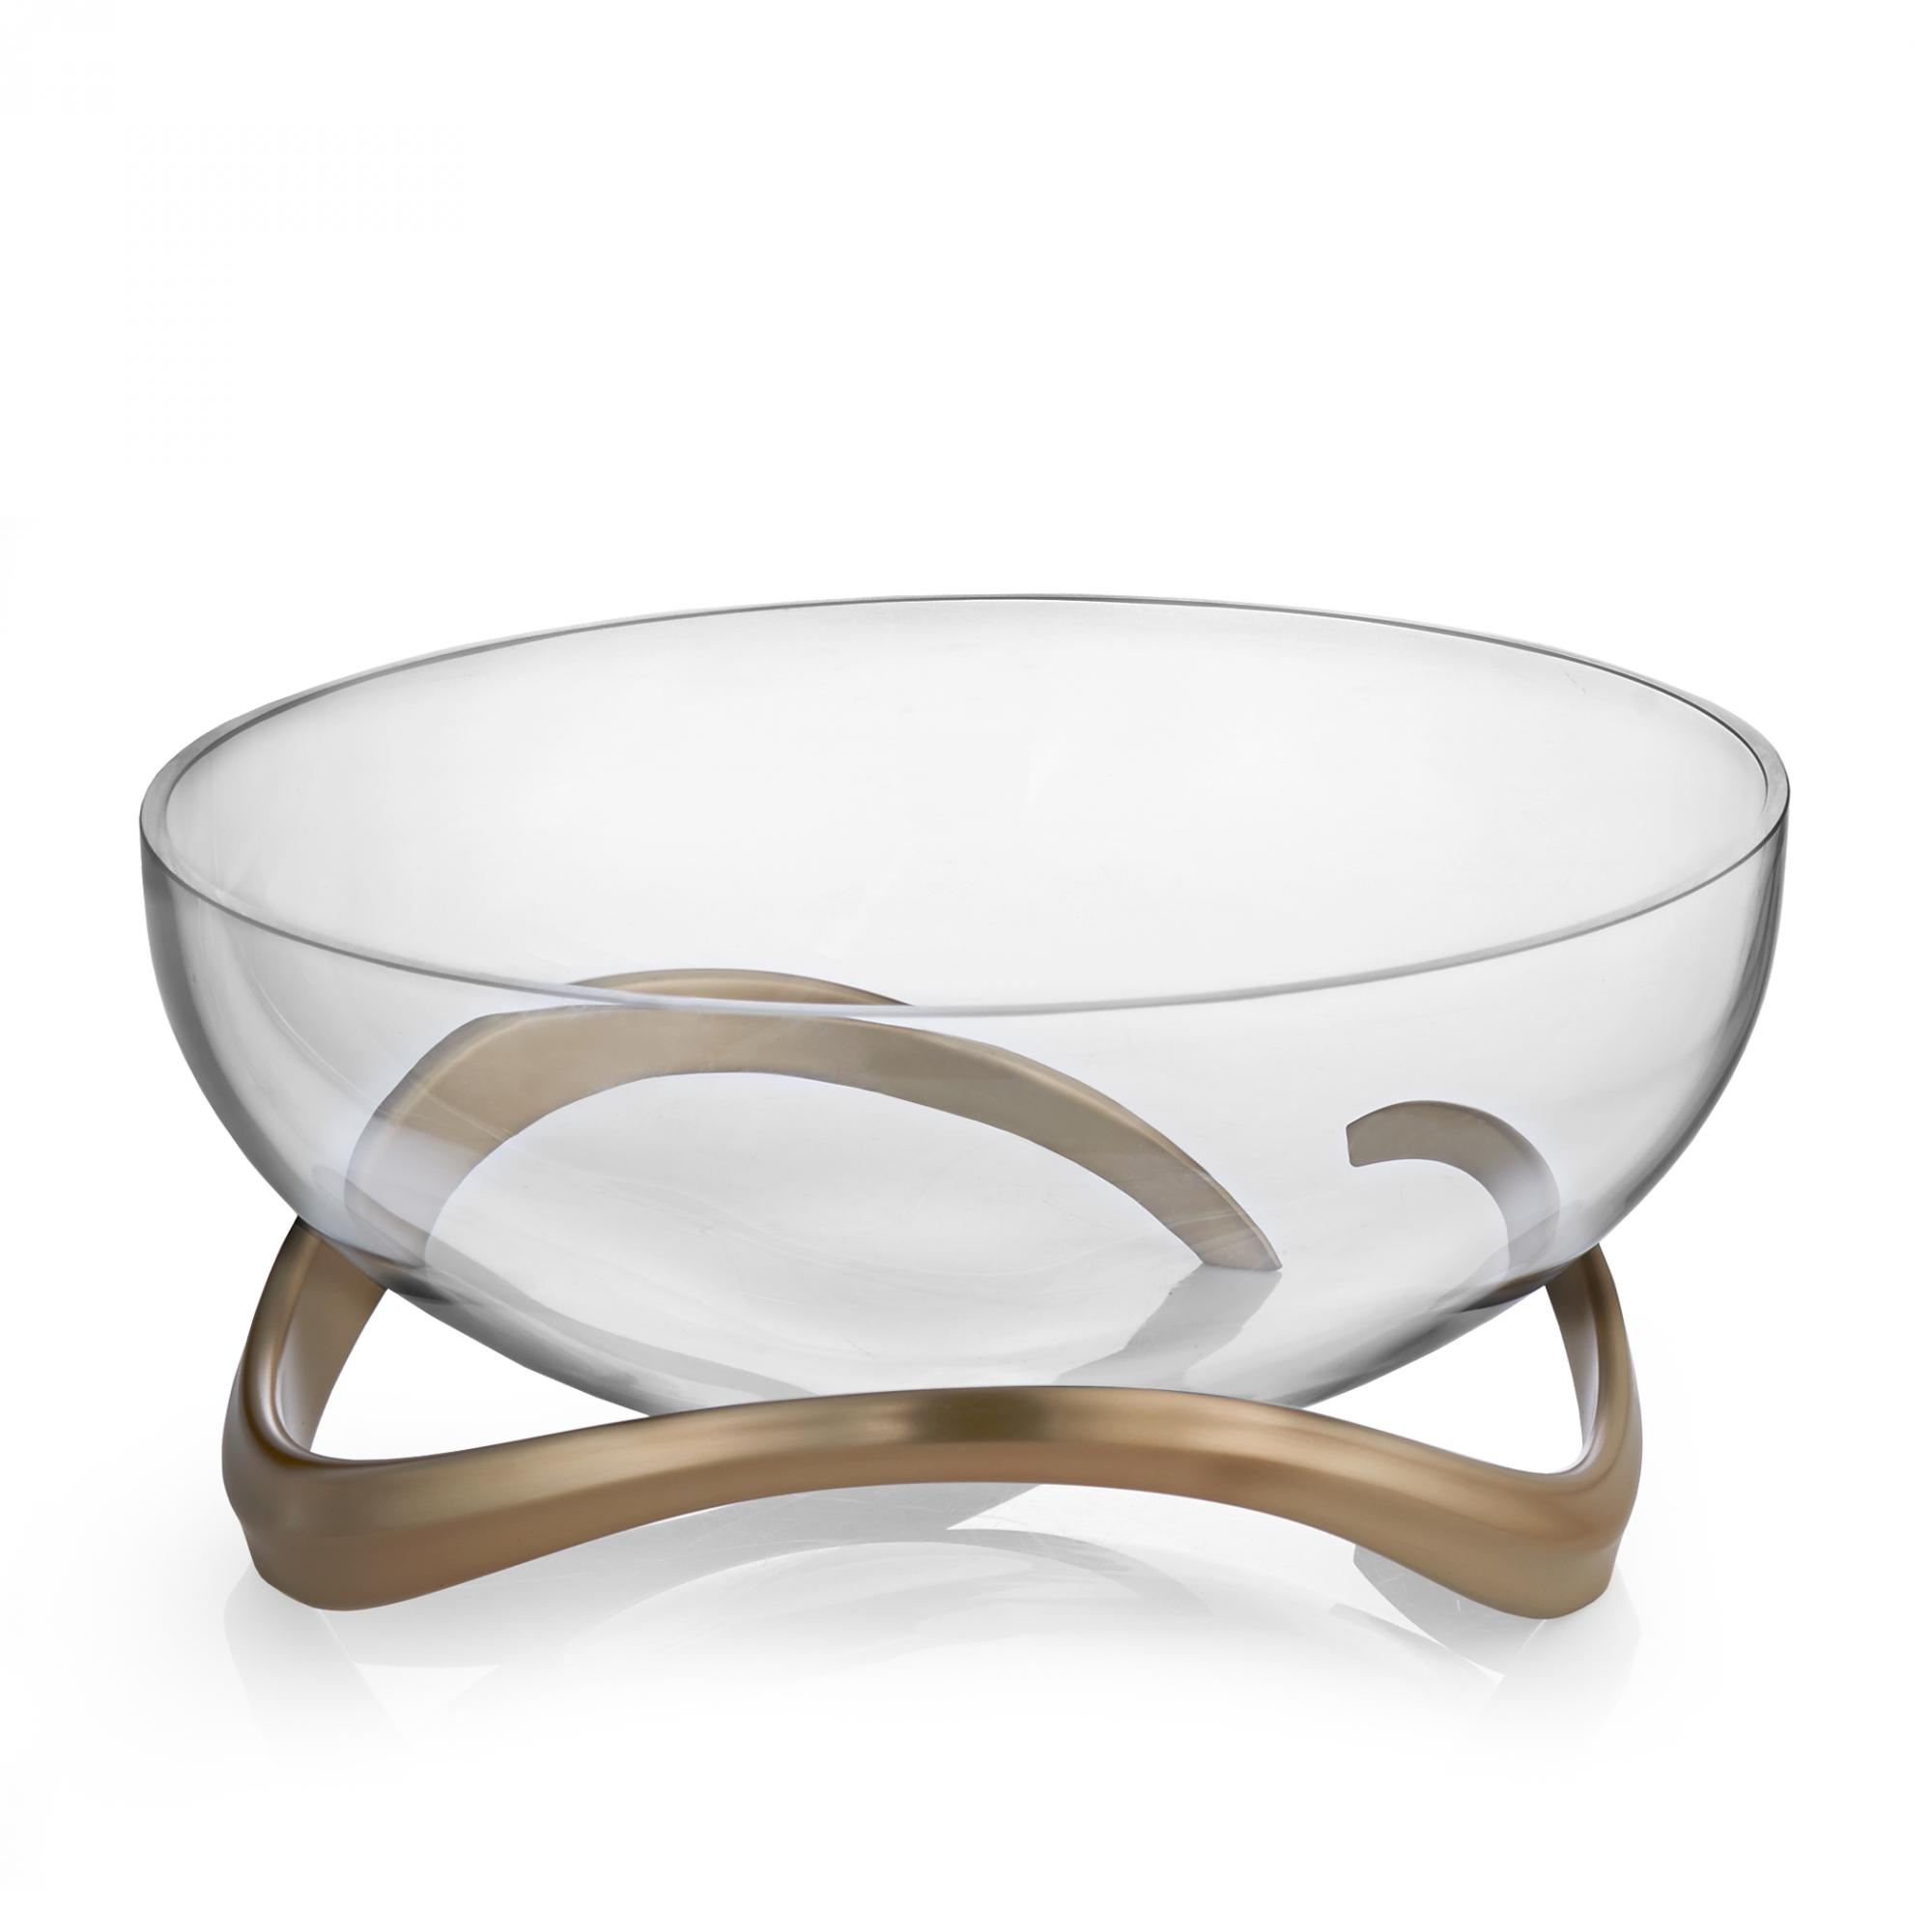 ECO CENTERPIECE BOWL